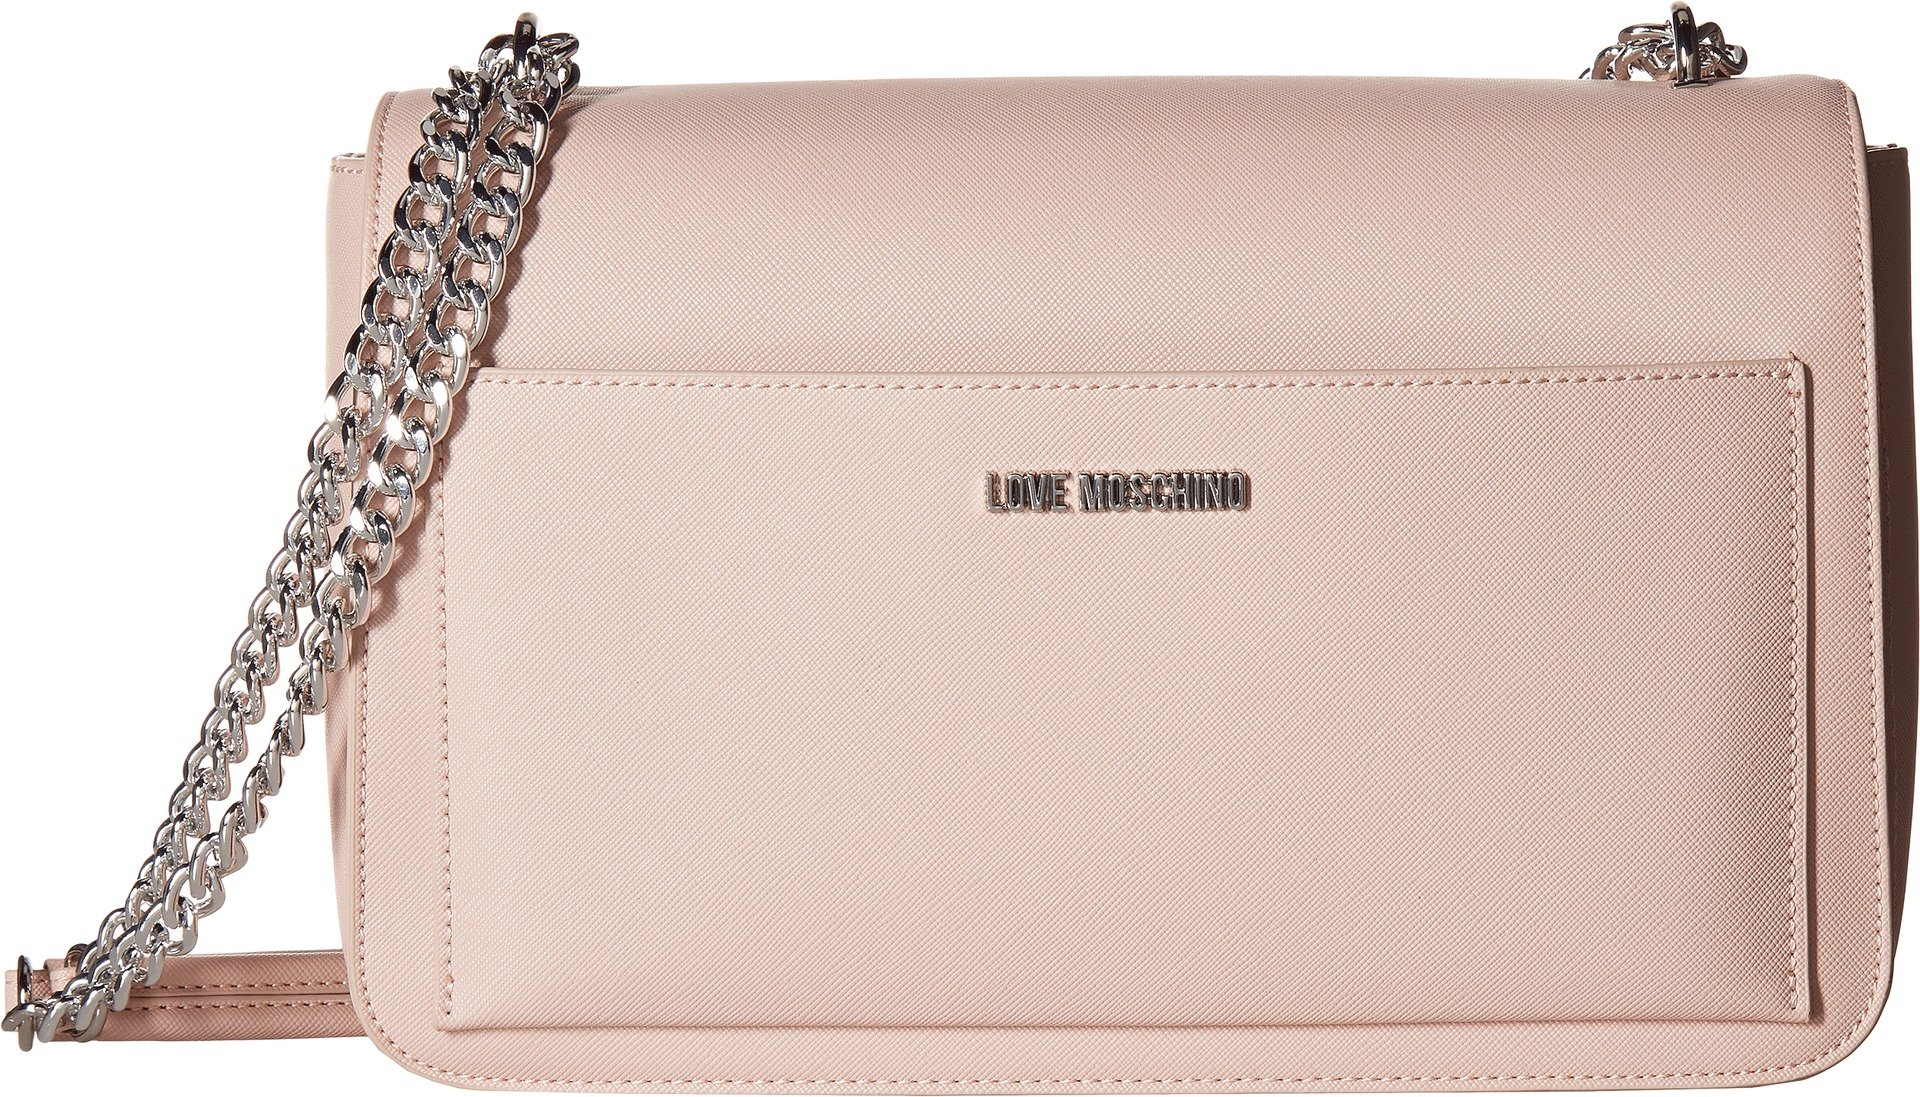 LOVE Moschino Women's Shoulder Bag Pink One Size